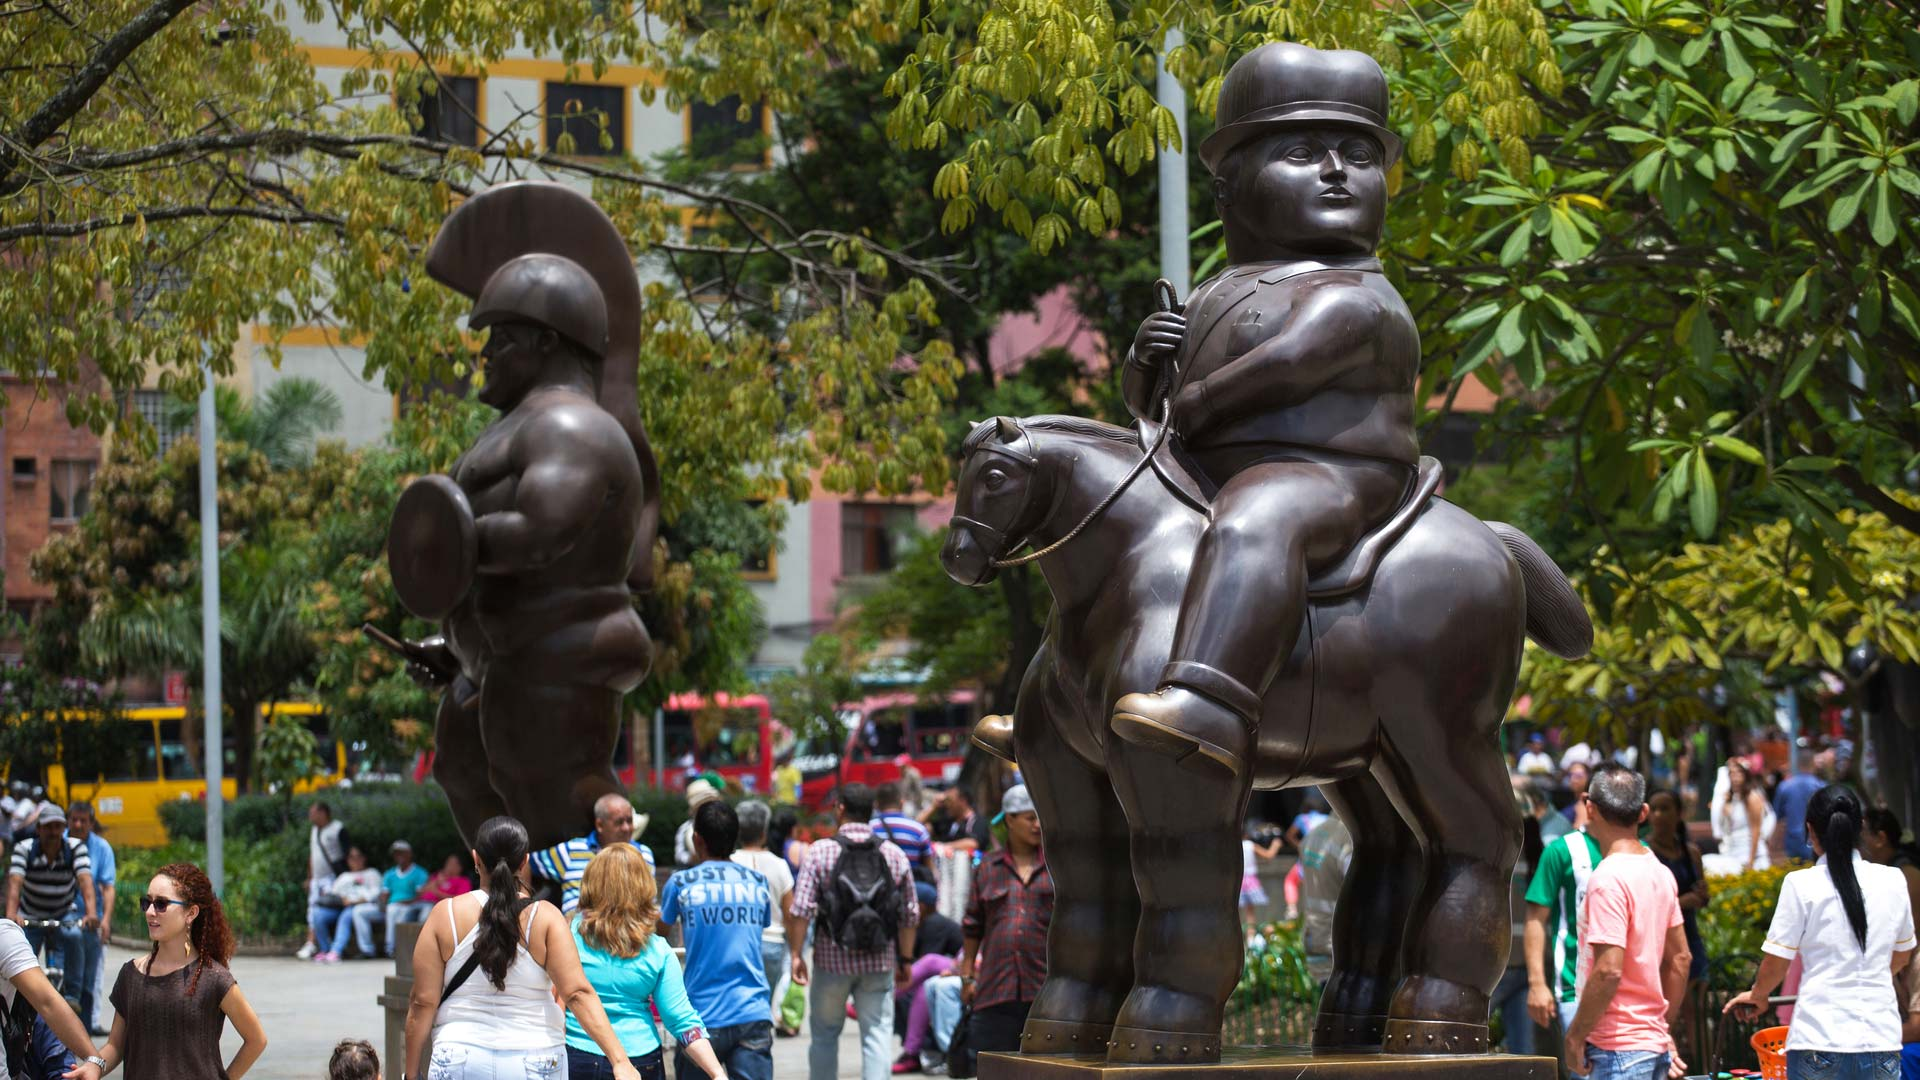 Botero Plaza sculptures by Fernando Botero, famous Colombian artist